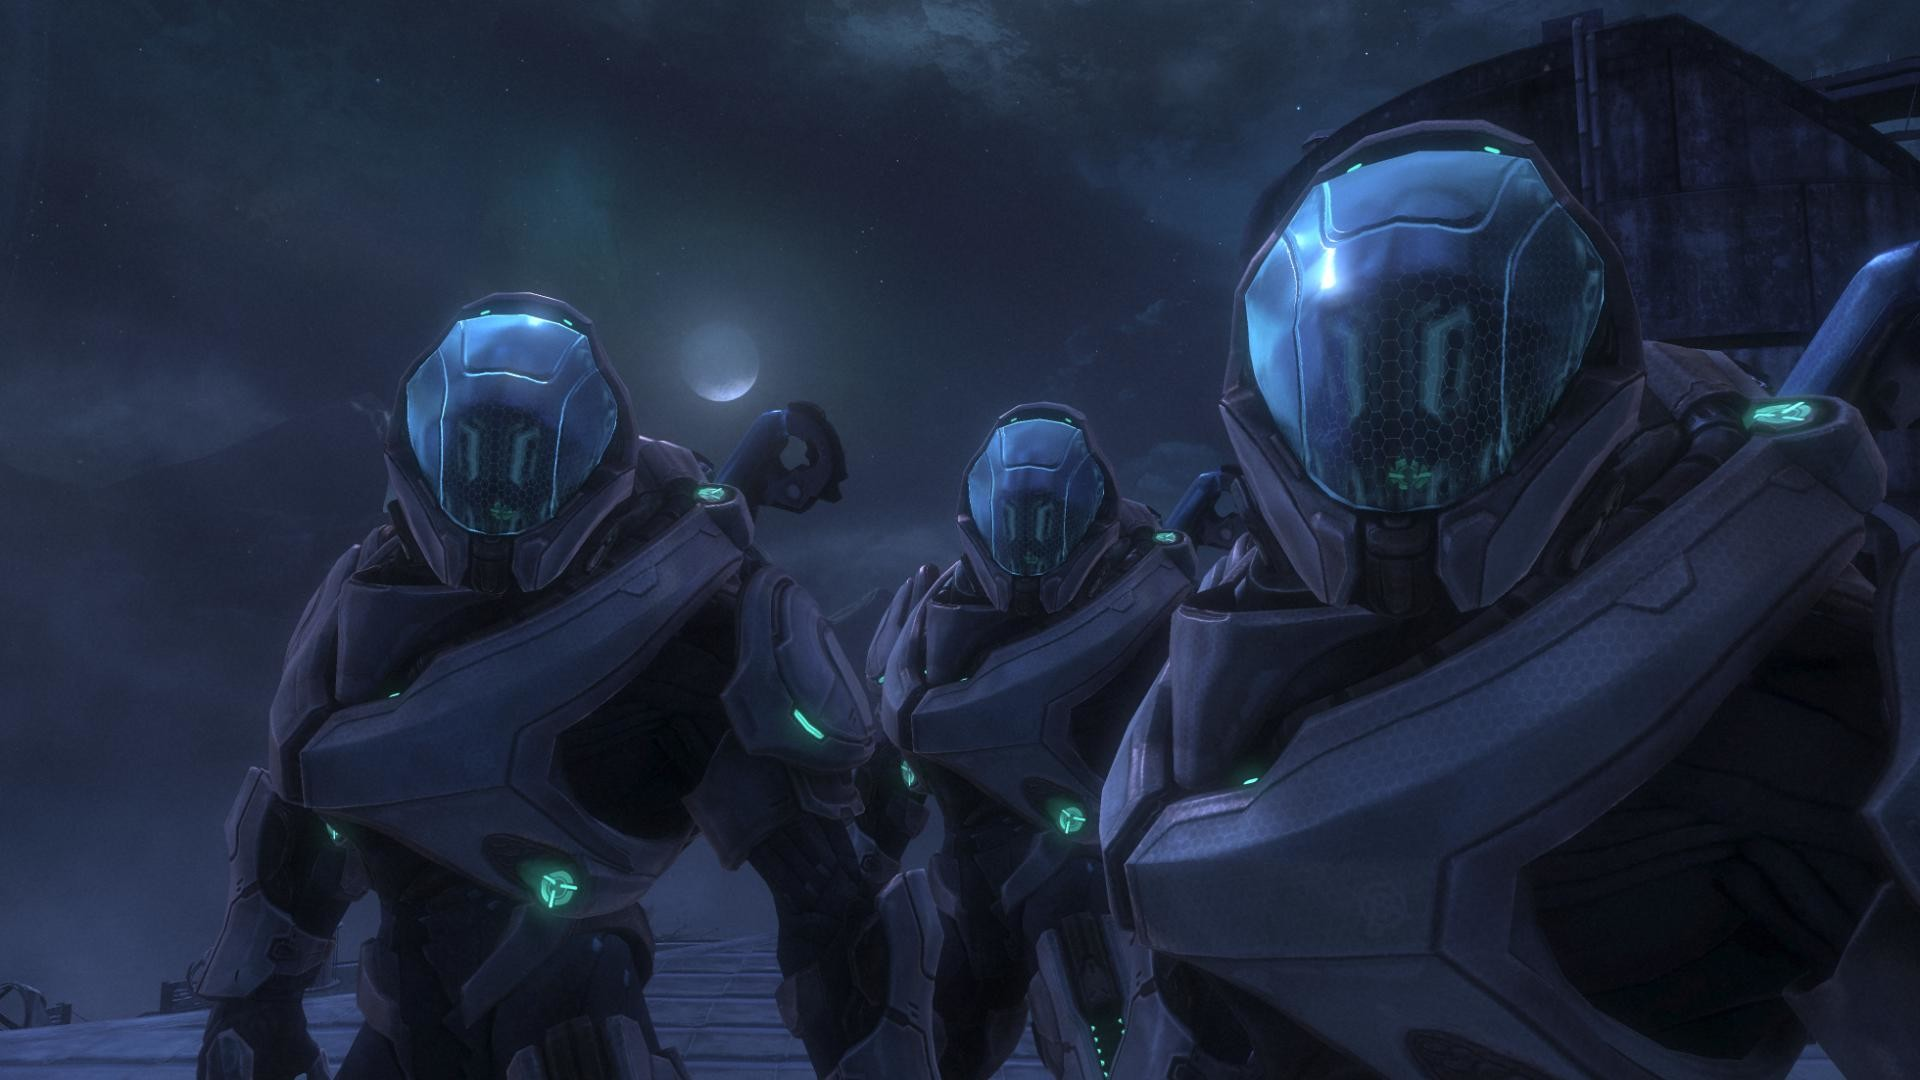 Gallery images and information: Halo 5 Elite Wallpaper